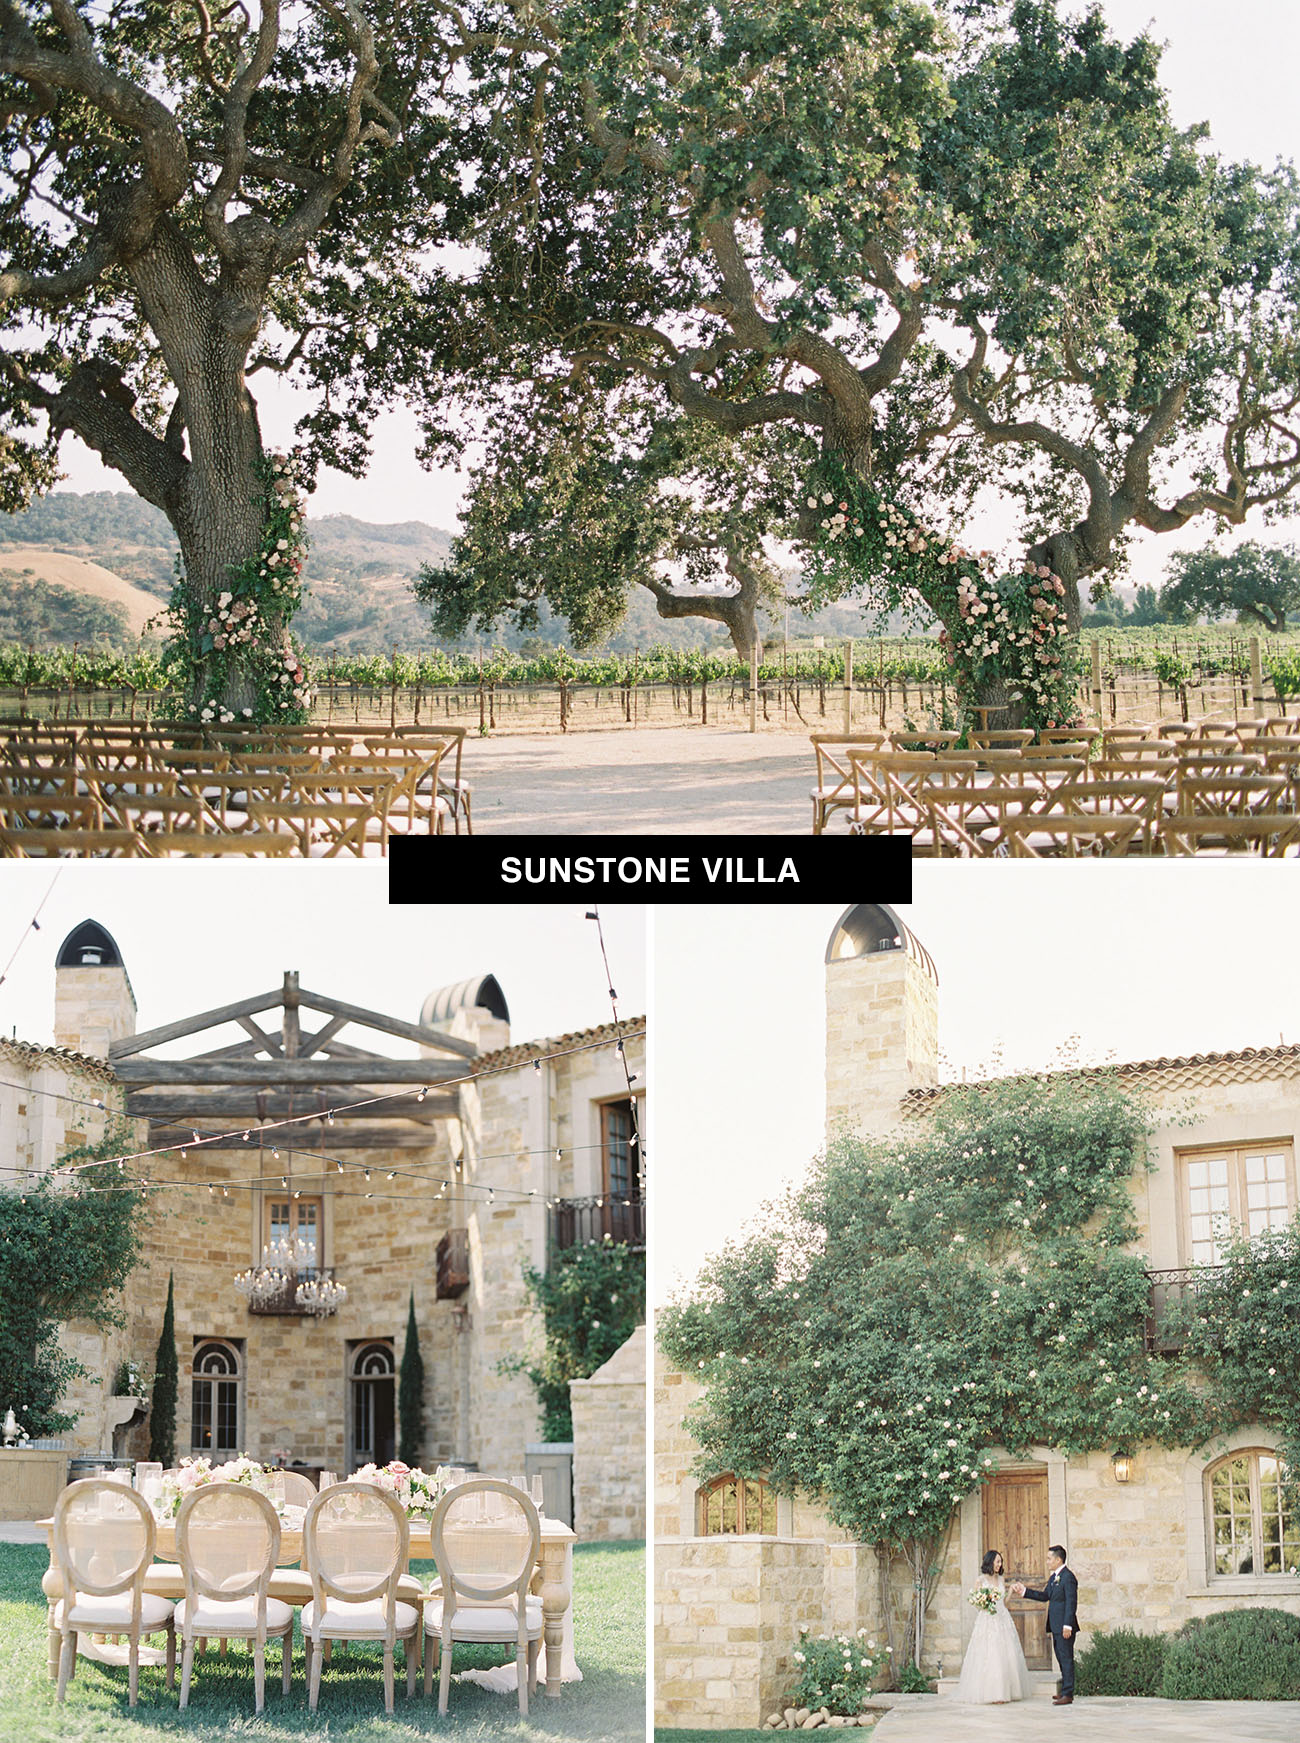 Sunstone Villa wedding venue in California a place to get married in the US with the feel of Italy